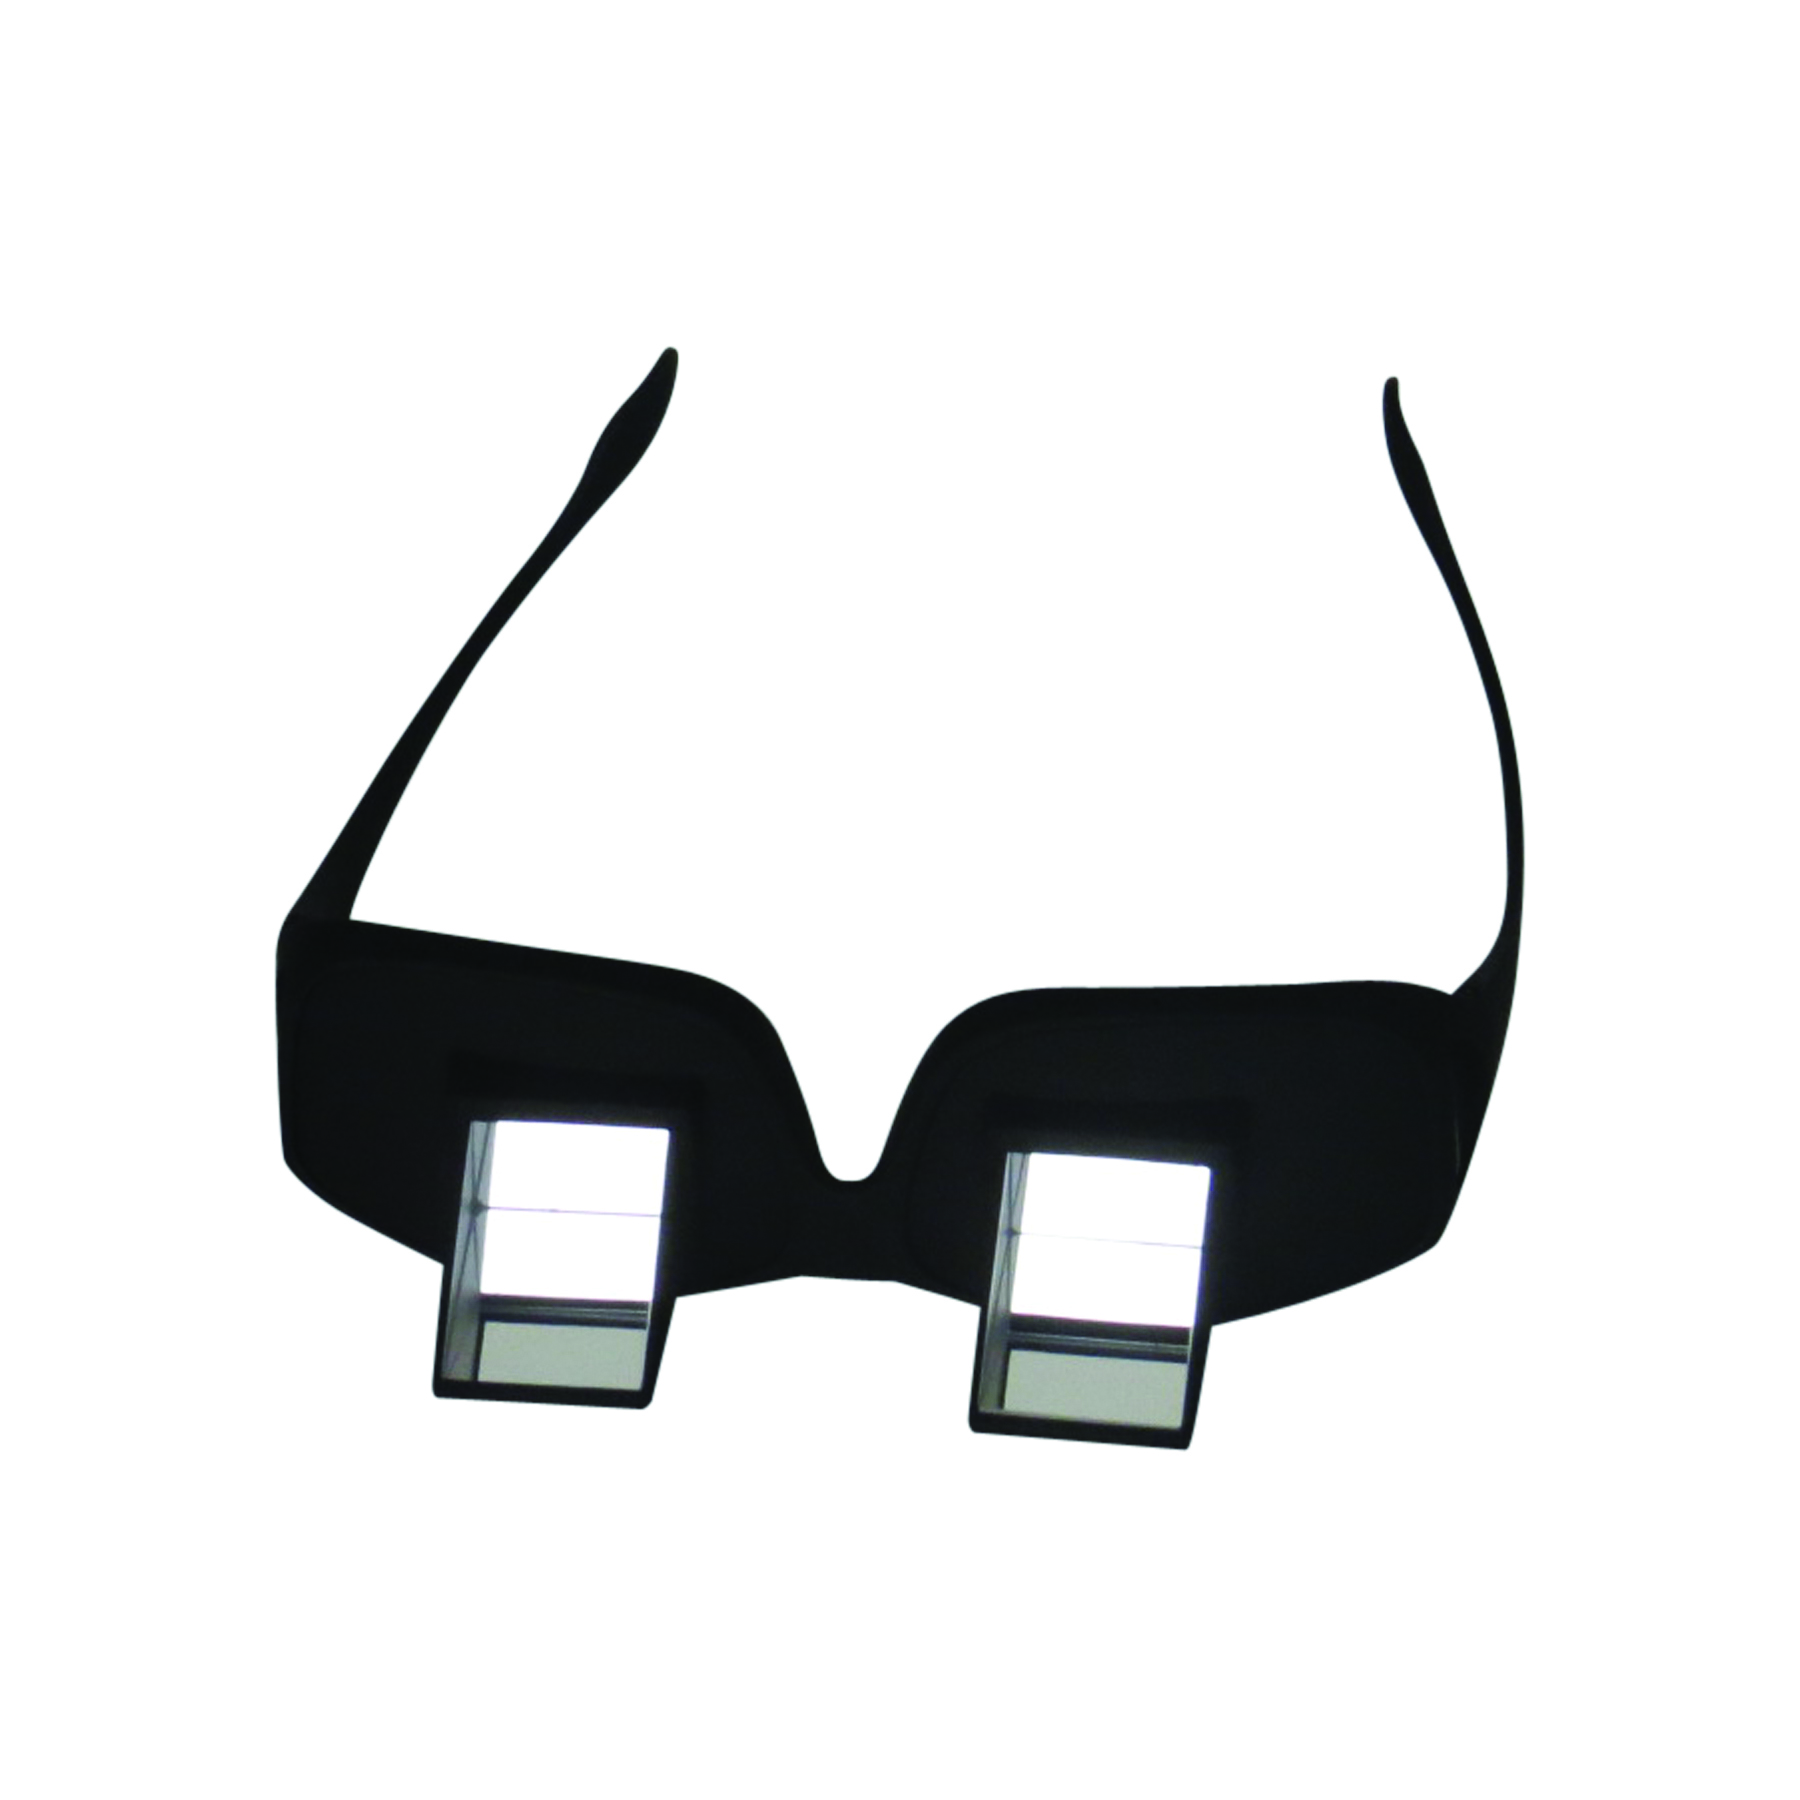 evelots 174 prism bed specs laying in tv book reading glasses